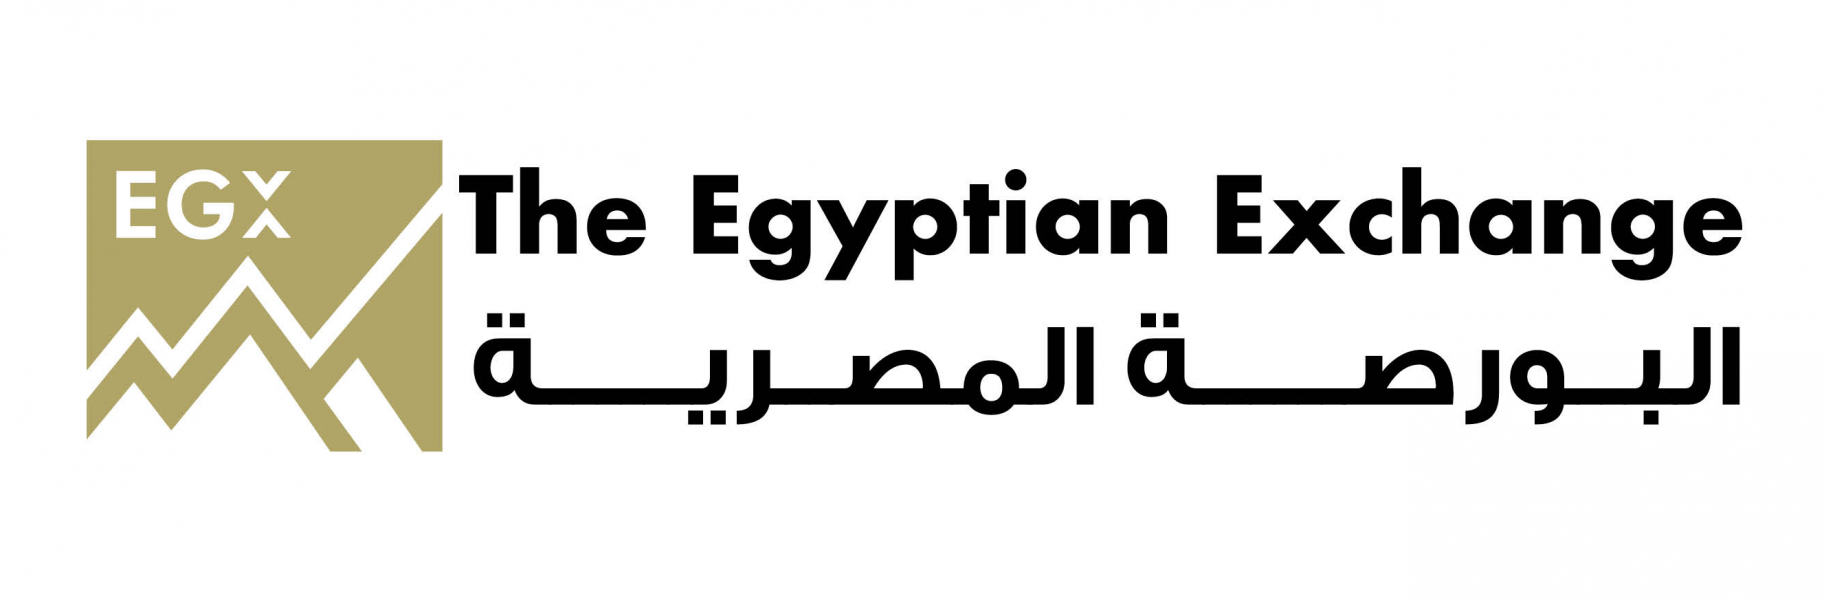 The-Egyptian-Exchange-Chairman-Participates-in-Eff